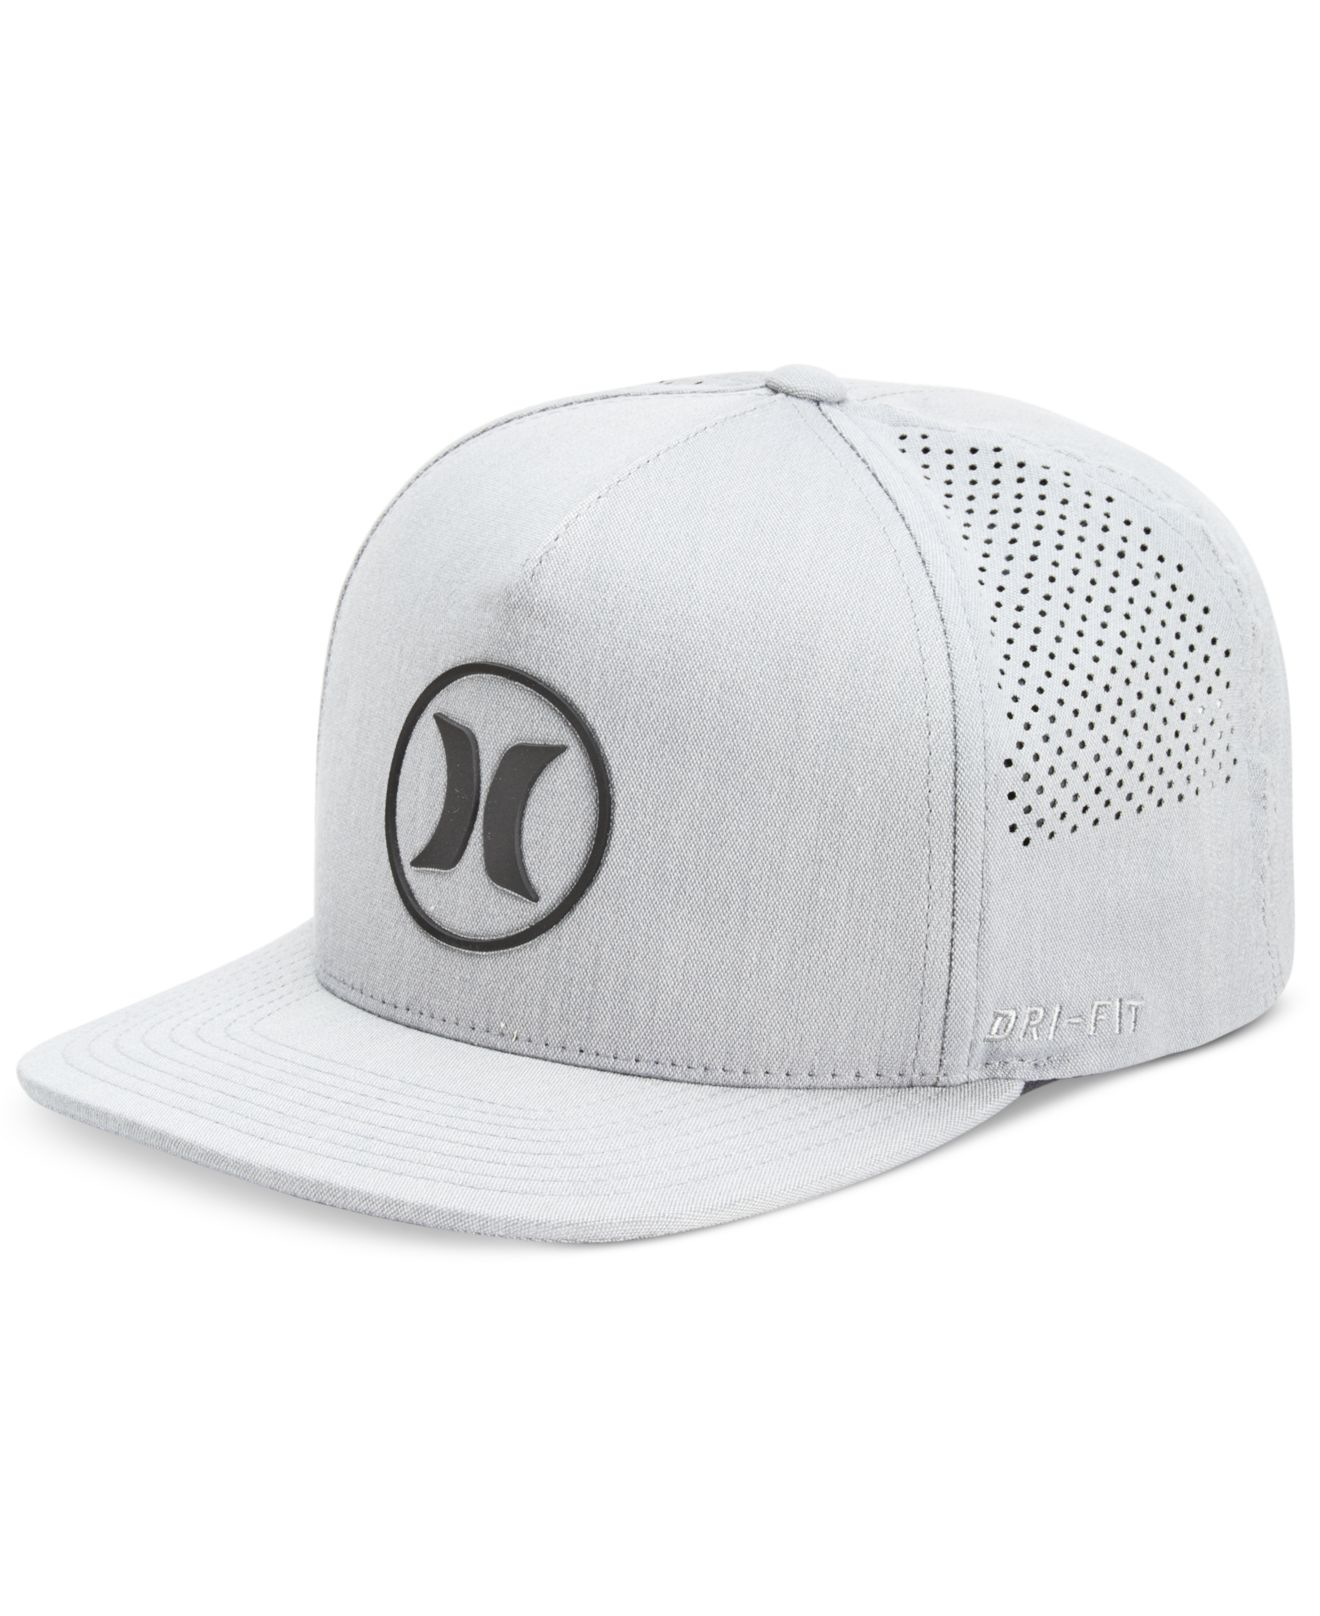 a5dbf8897a8 ... norway lyst hurley mens dri fit icon 2.0 perforated logo hat in gray  for men d8b1d